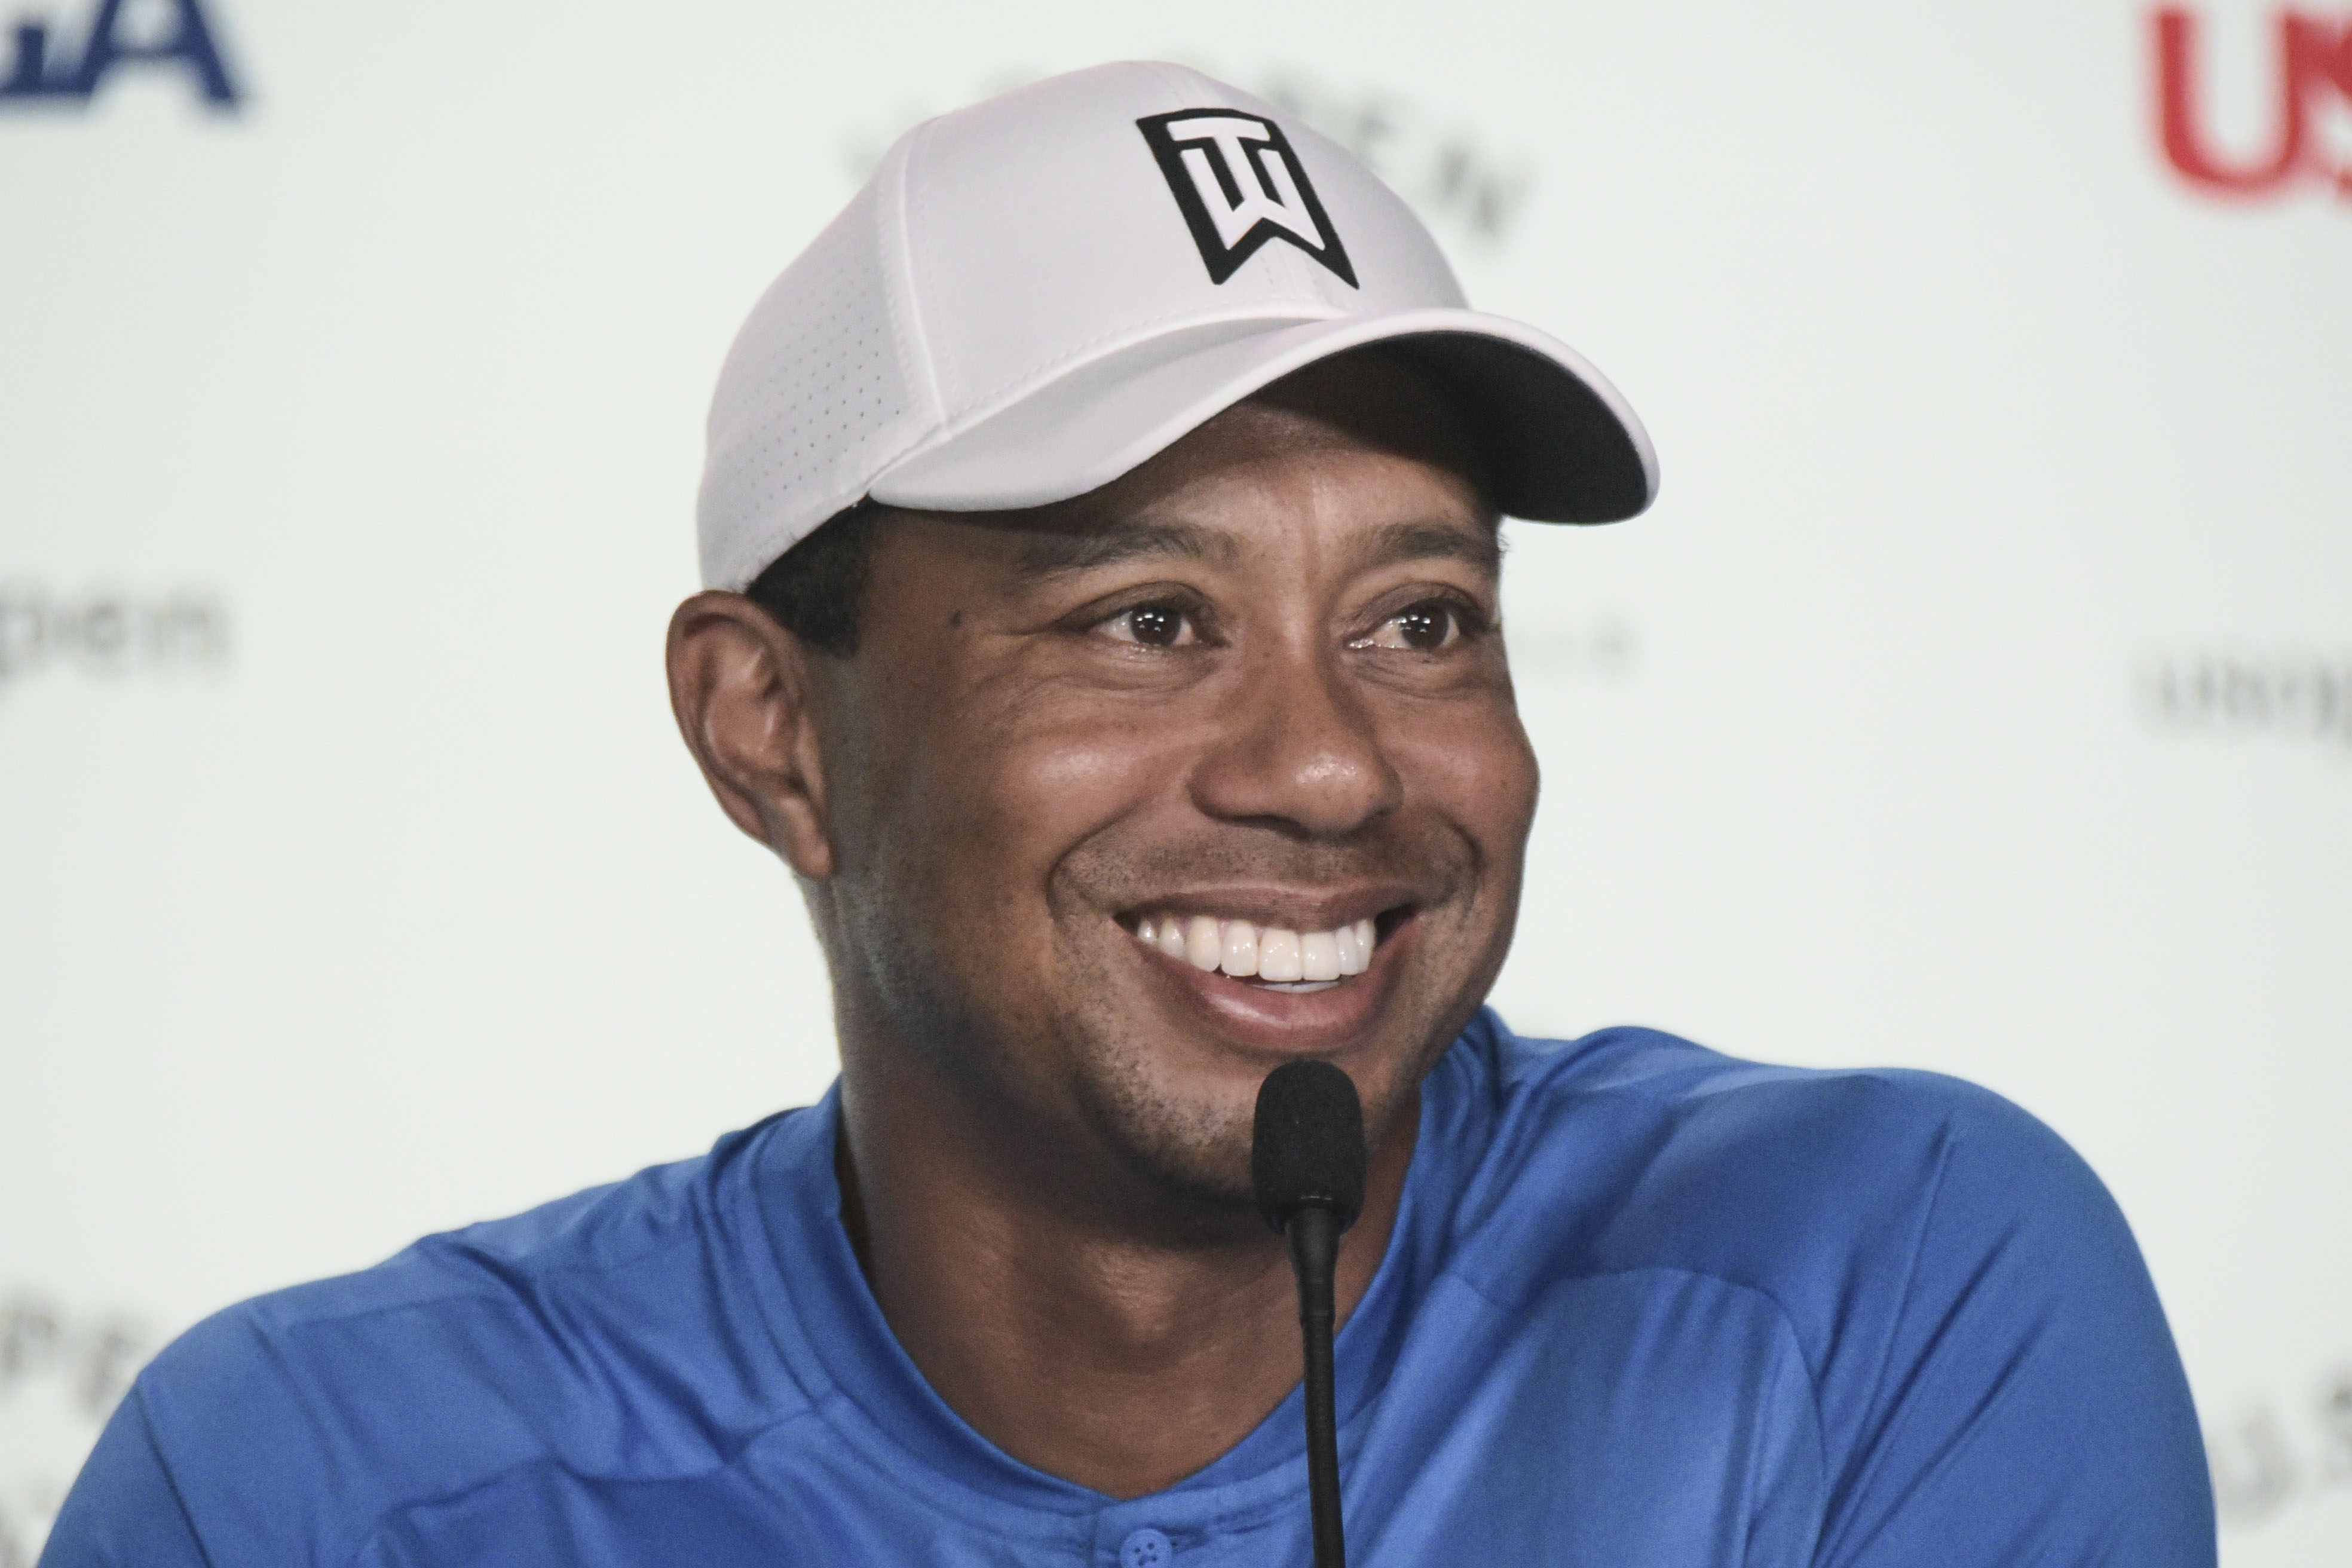 Tiger Woods Up On Crutches 2 Months After Car Accident